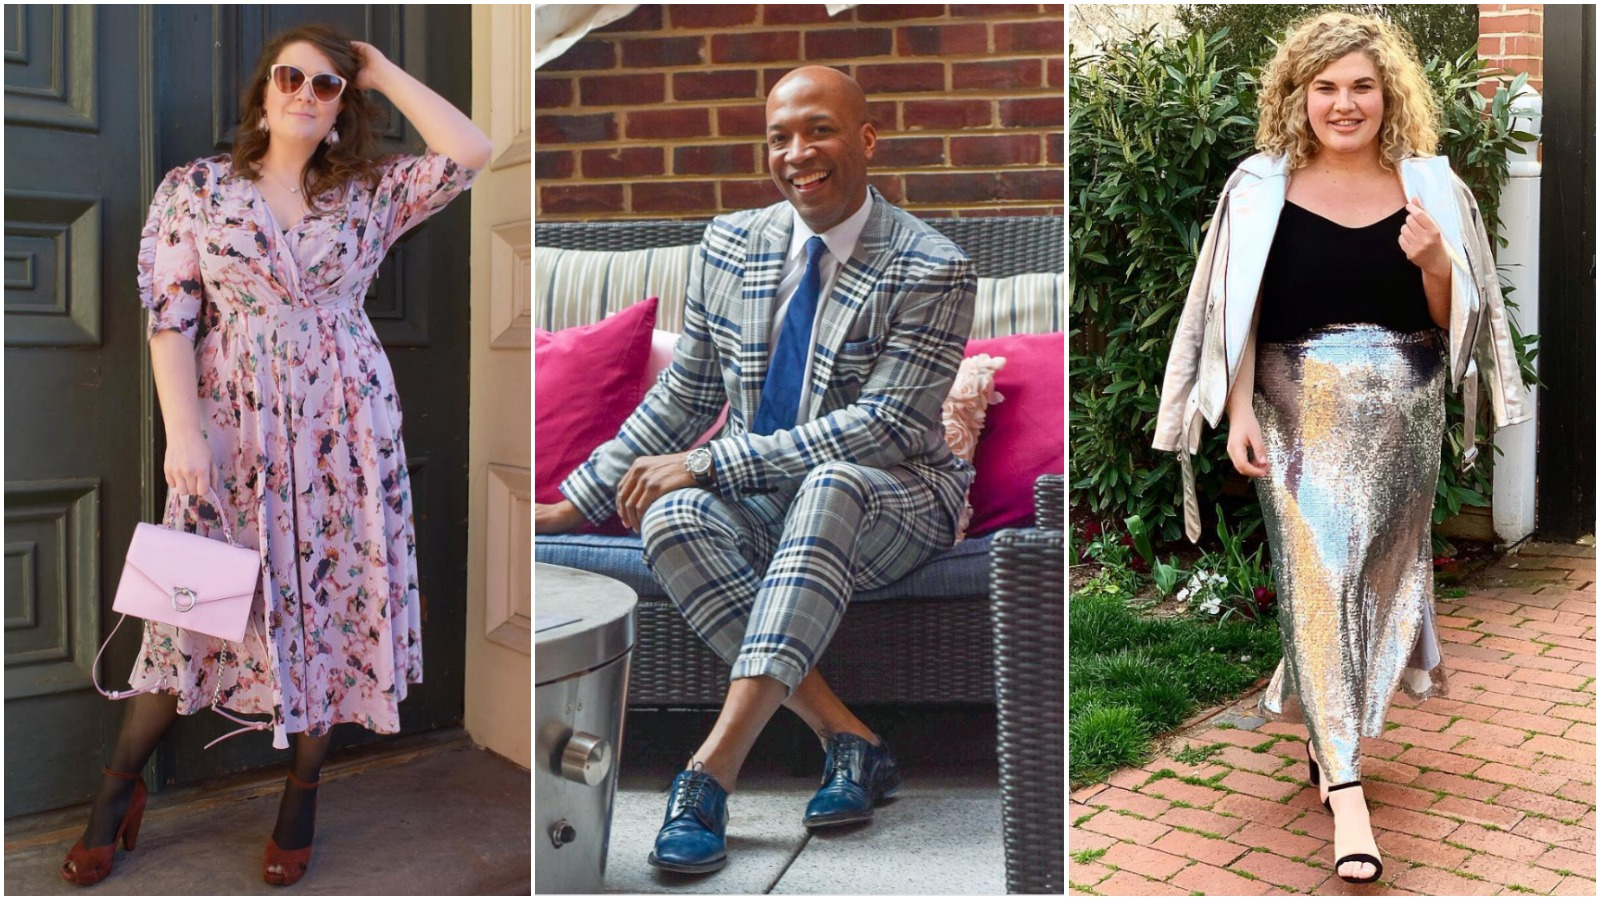 Spring has finally sprung and D.C.'s most stylish bloggers and Instagrammers{ } are inspiring us to banish the dull greys and heavy coats of winter. Here are the best local looks we spotted this month.